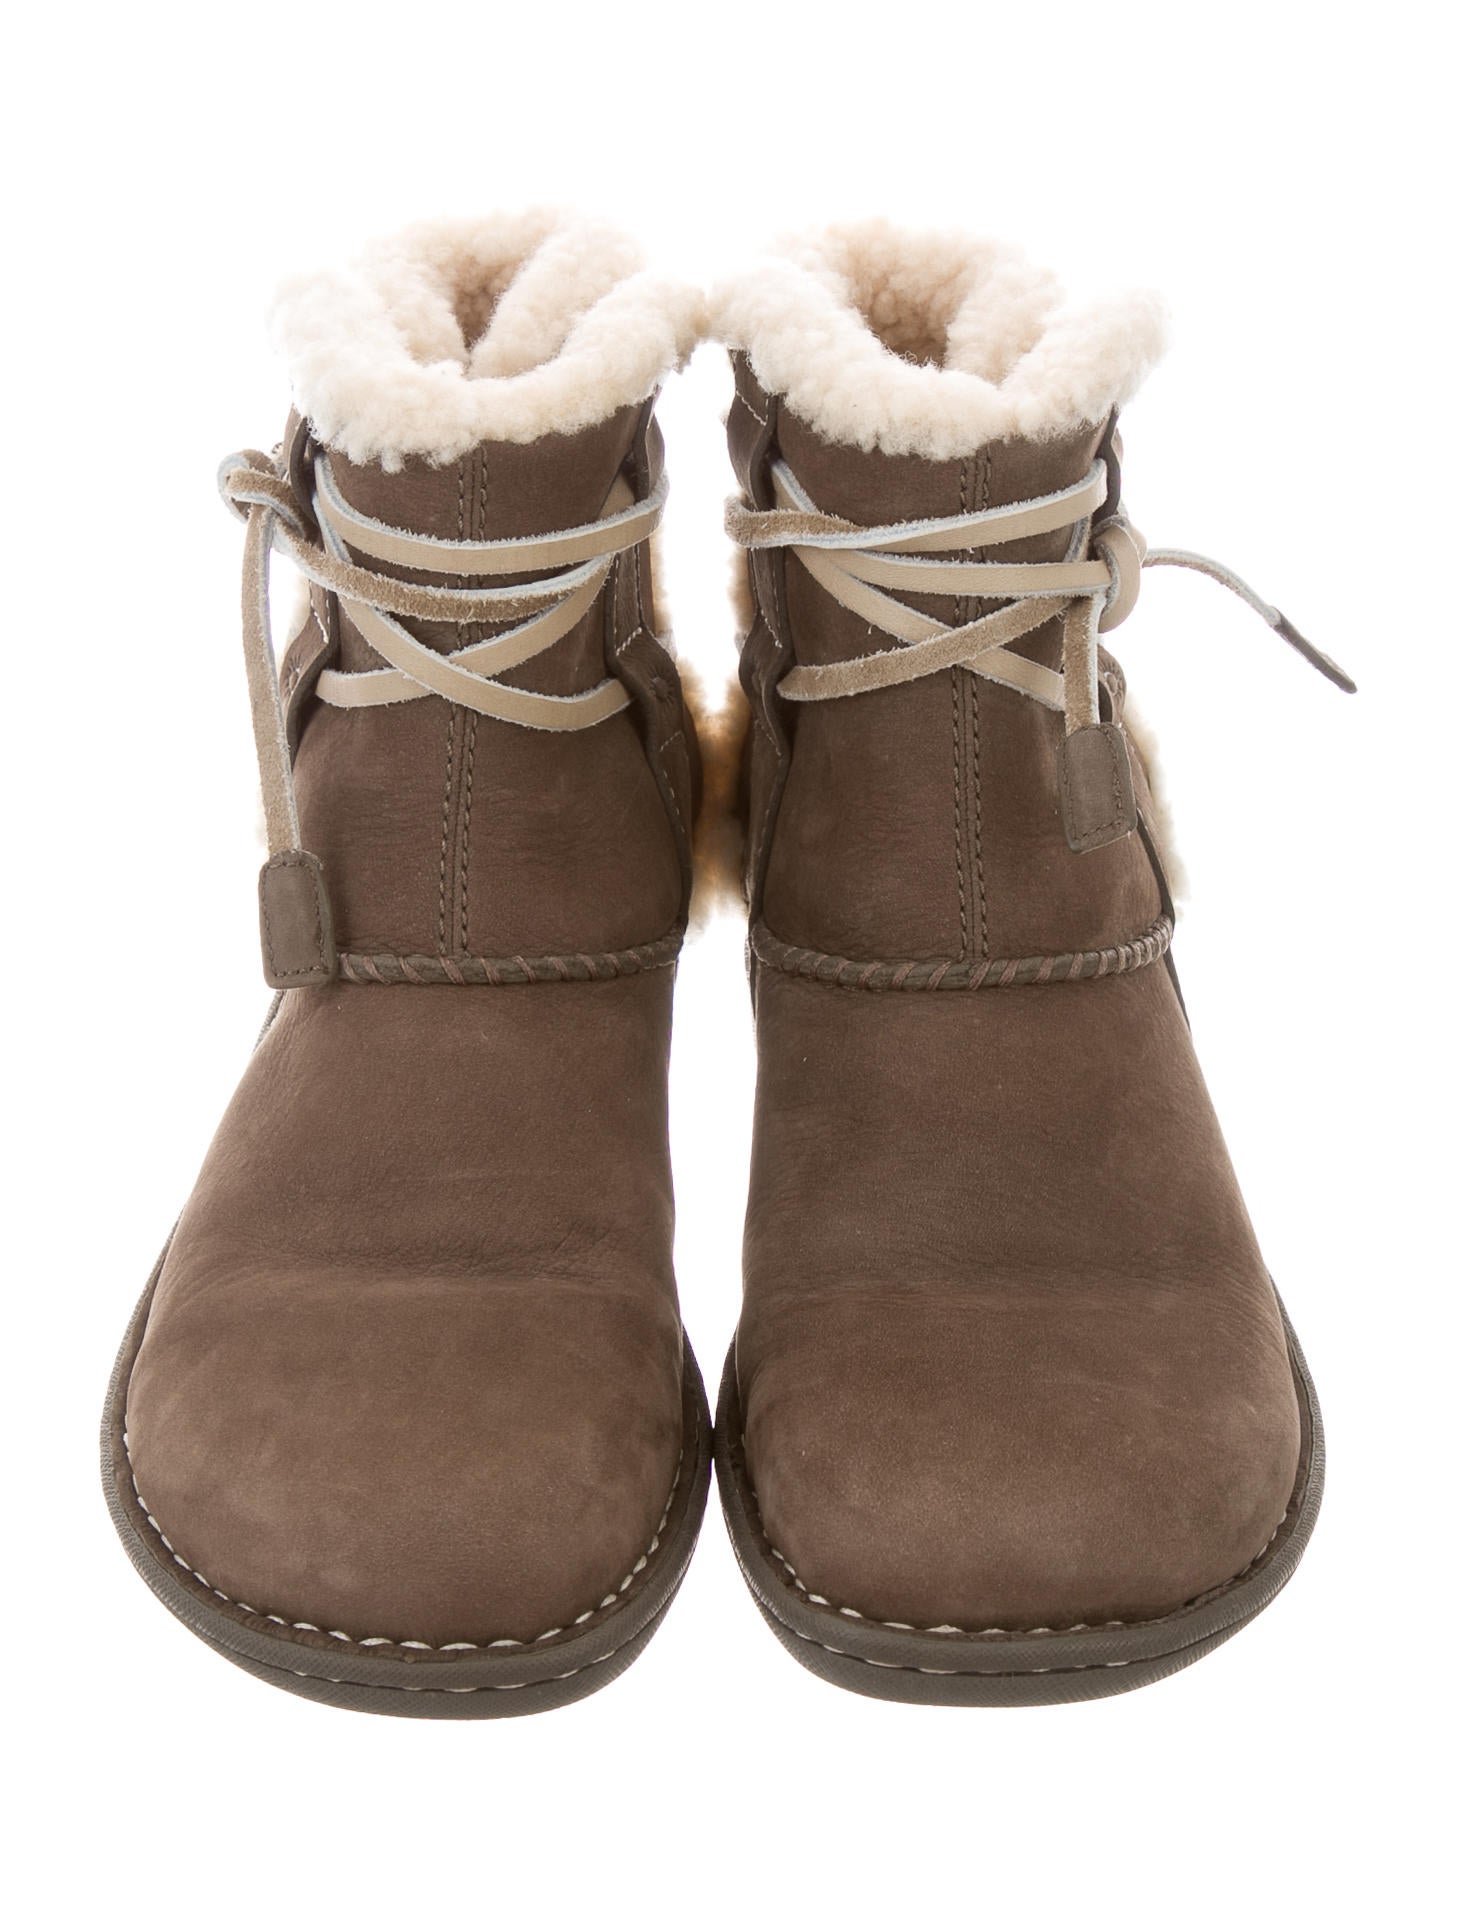 Find the right work boots from the large selection offered by 355movie.ml Available are well-designed and durable military, hunting, hiking, nursing, logger, snow, casual, soft-toe, and steel-toe boots.